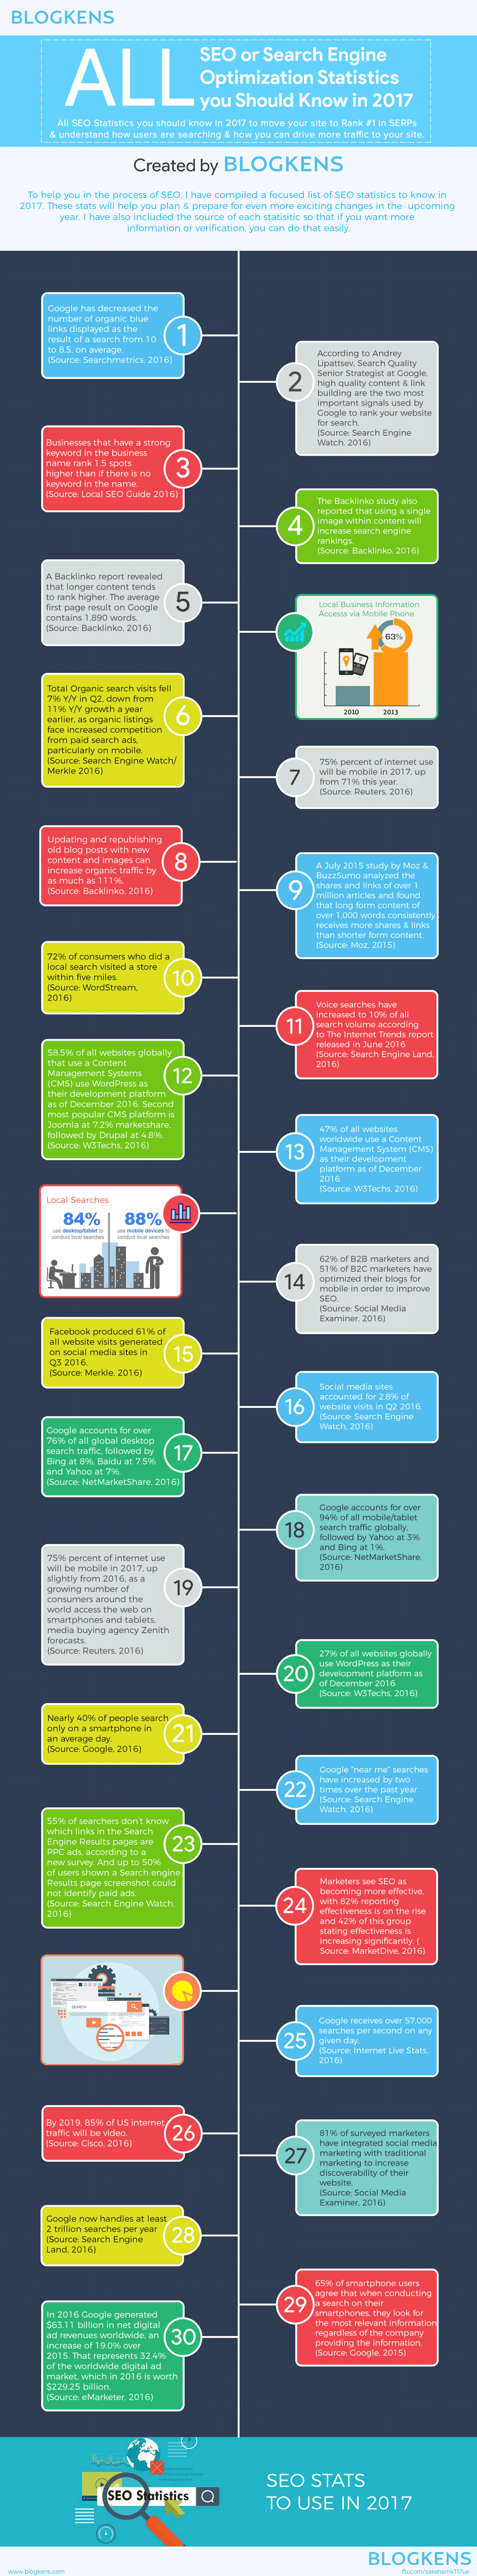 Infographic of all SEO Statistics you should know in 2017